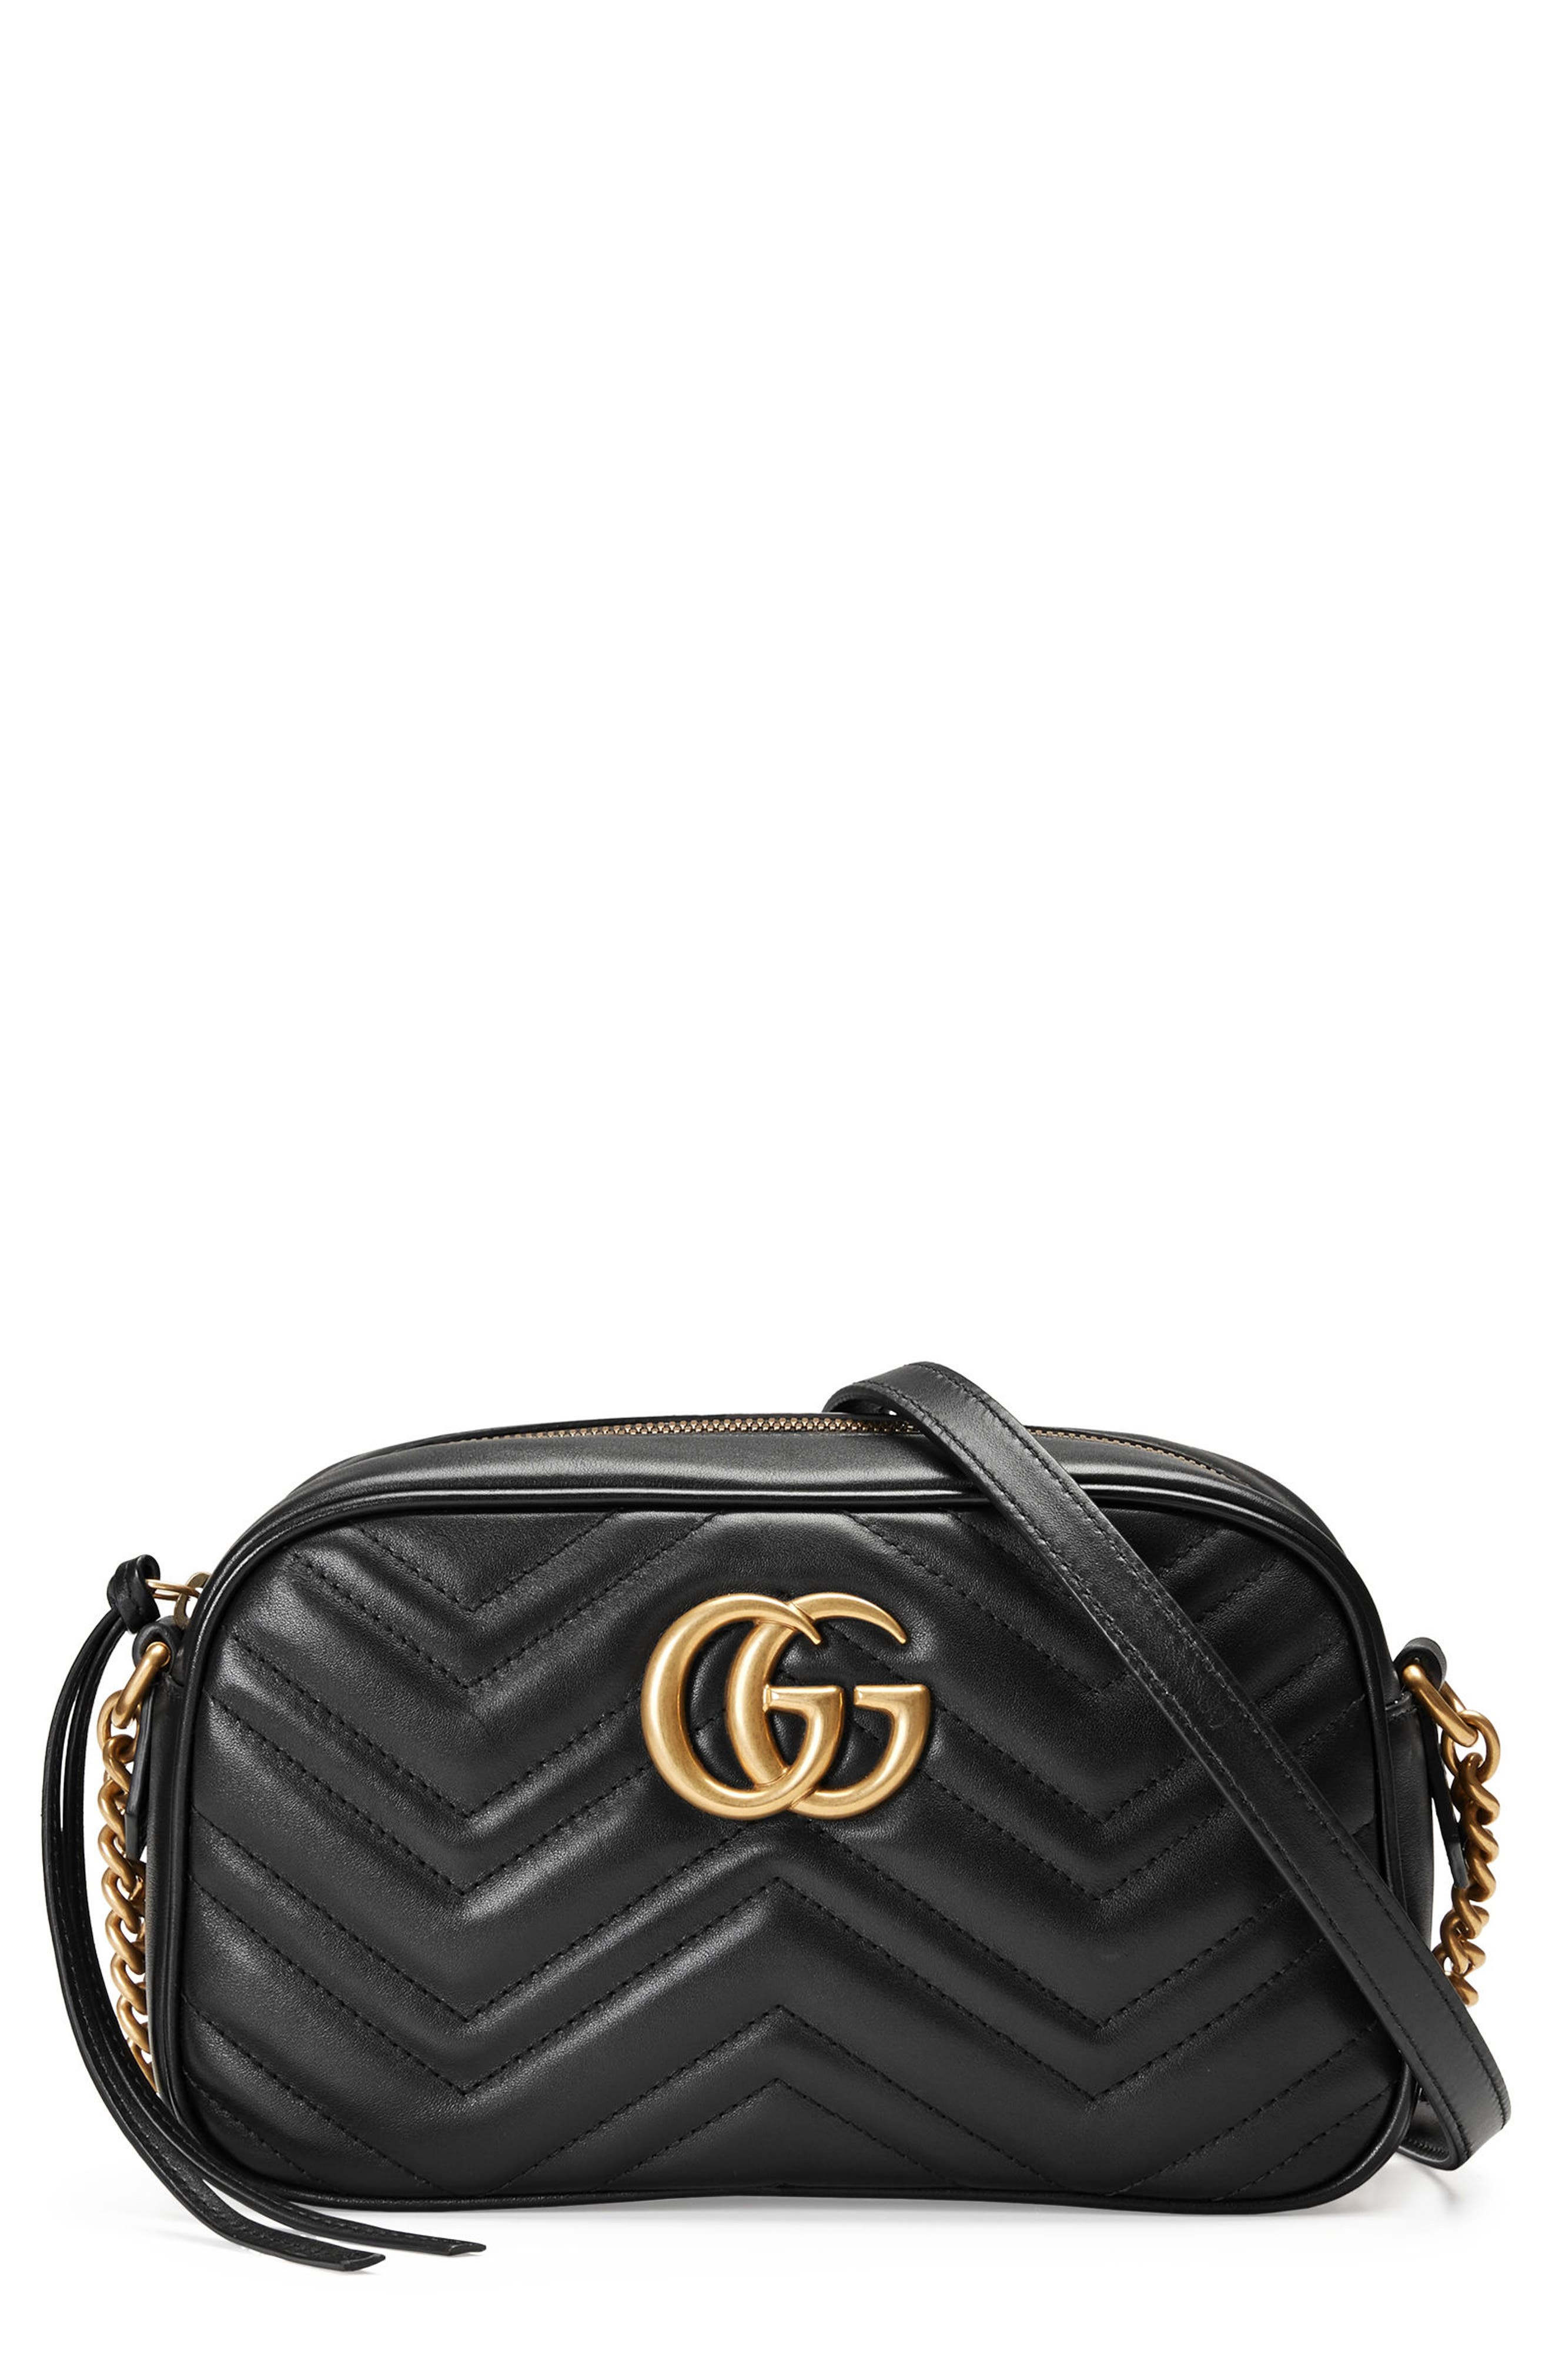 gucci bags at nordstrom. main image - gucci gg marmont 2.0 matelassé leather camera bag bags at nordstrom n